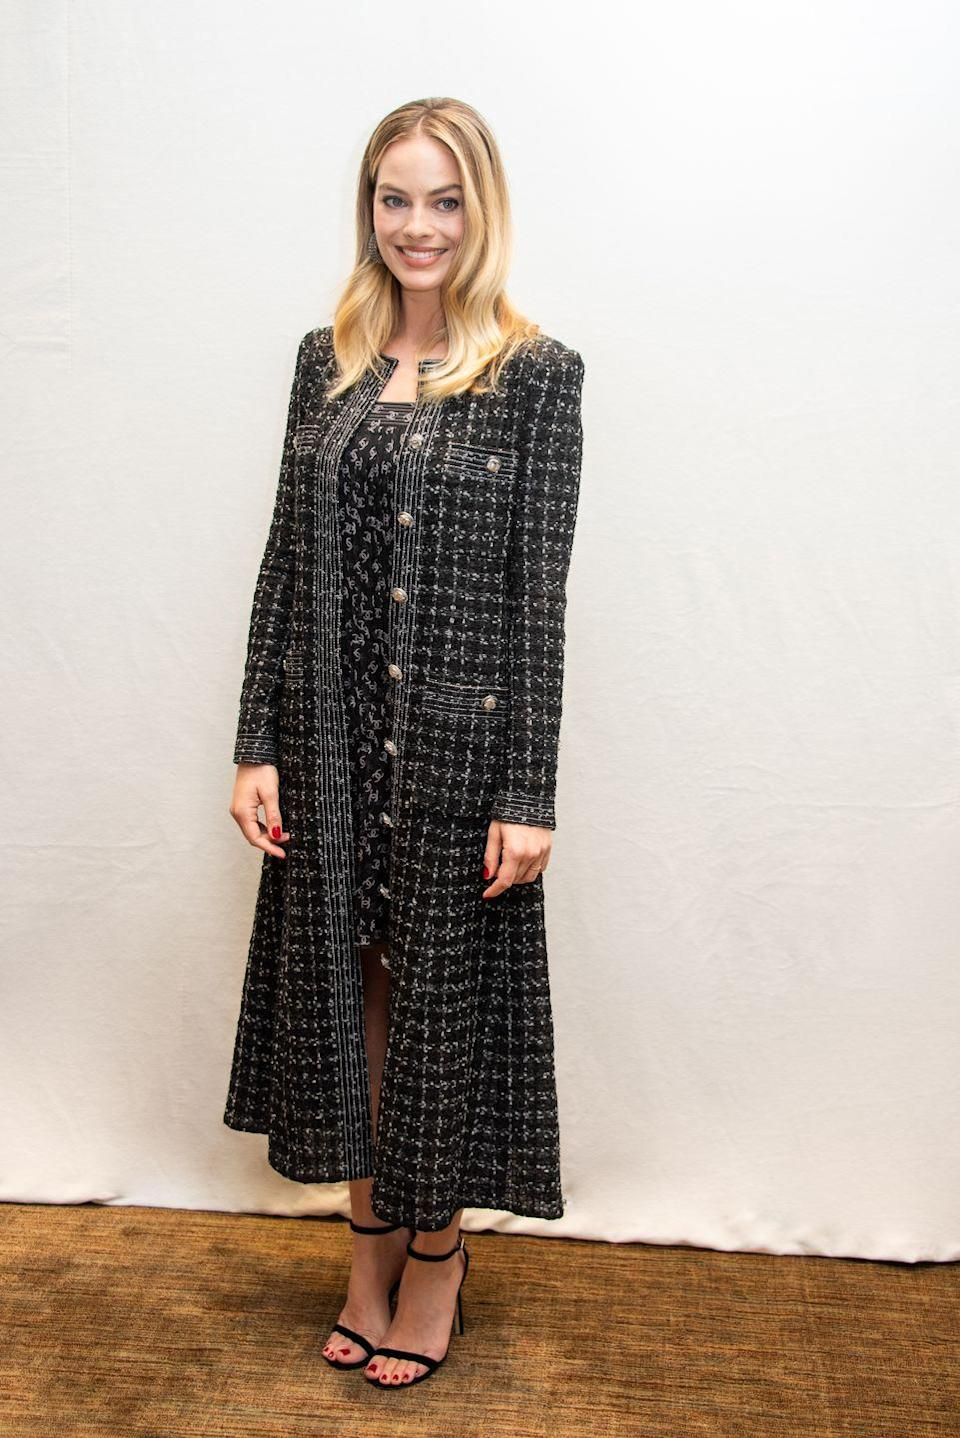 """<p>The actress wore a black and white Chanel dress and longline coat on Sunday in Los Angeles for the press conference for her upcoming film, <a href=""""https://www.elle.com/uk/life-and-culture/culture/a28781859/bombshell-margot-robbie-nicole-kidman-true-story/"""" rel=""""nofollow noopener"""" target=""""_blank"""" data-ylk=""""slk:Bombshell"""" class=""""link rapid-noclick-resp"""">Bombshell</a>.</p>"""